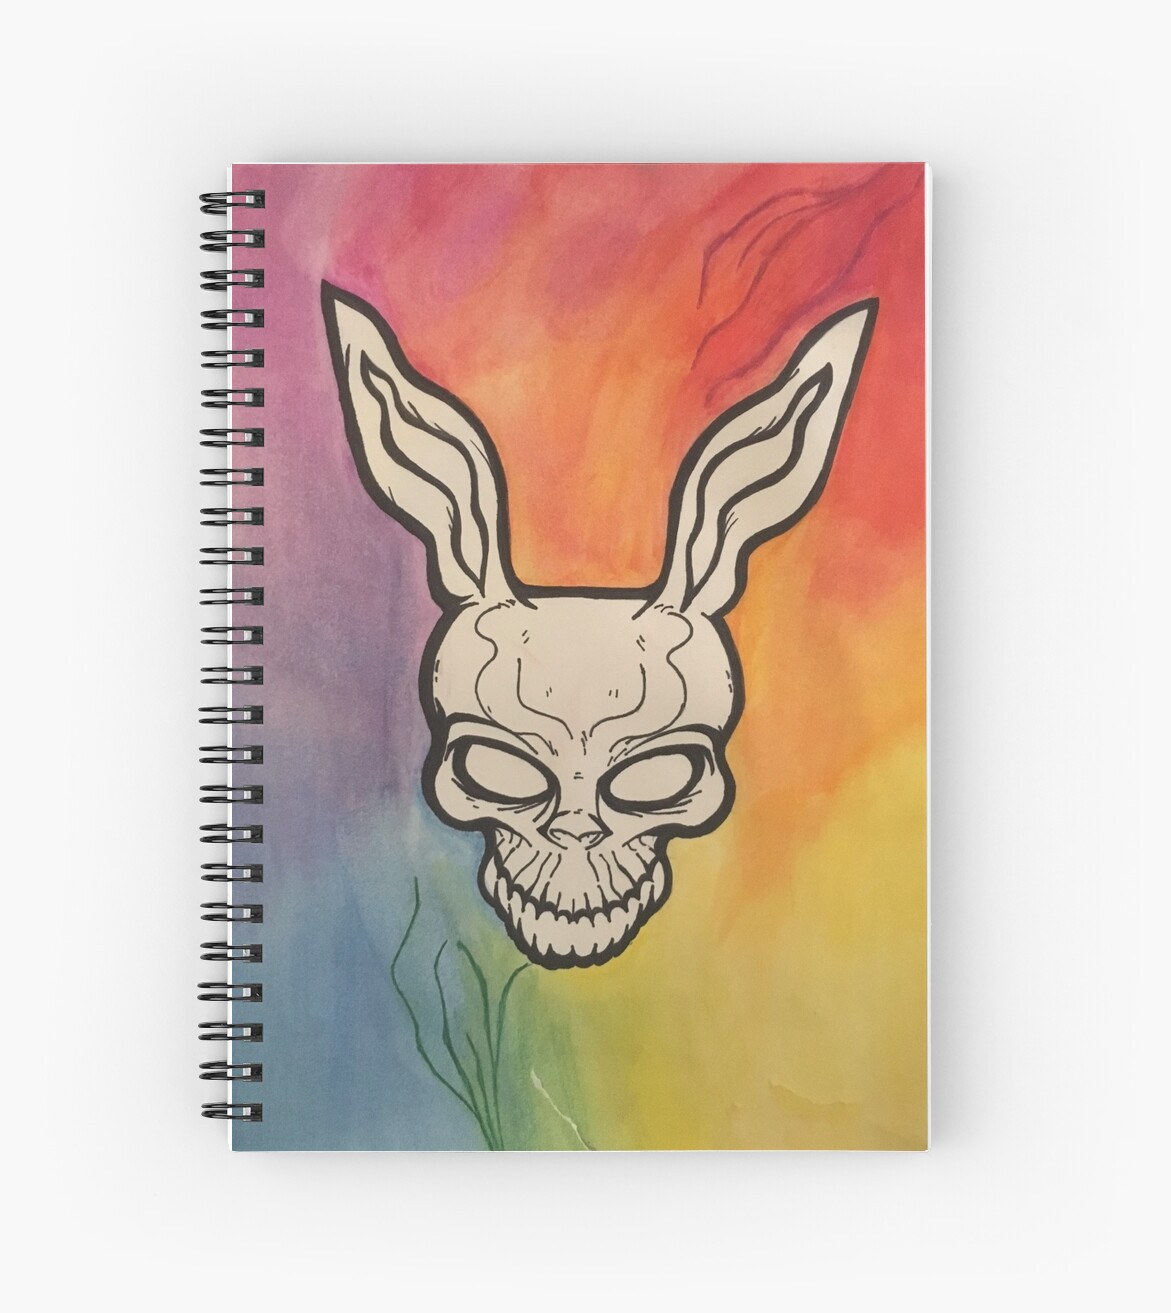 Darko Bunny by Claudia Mineiro